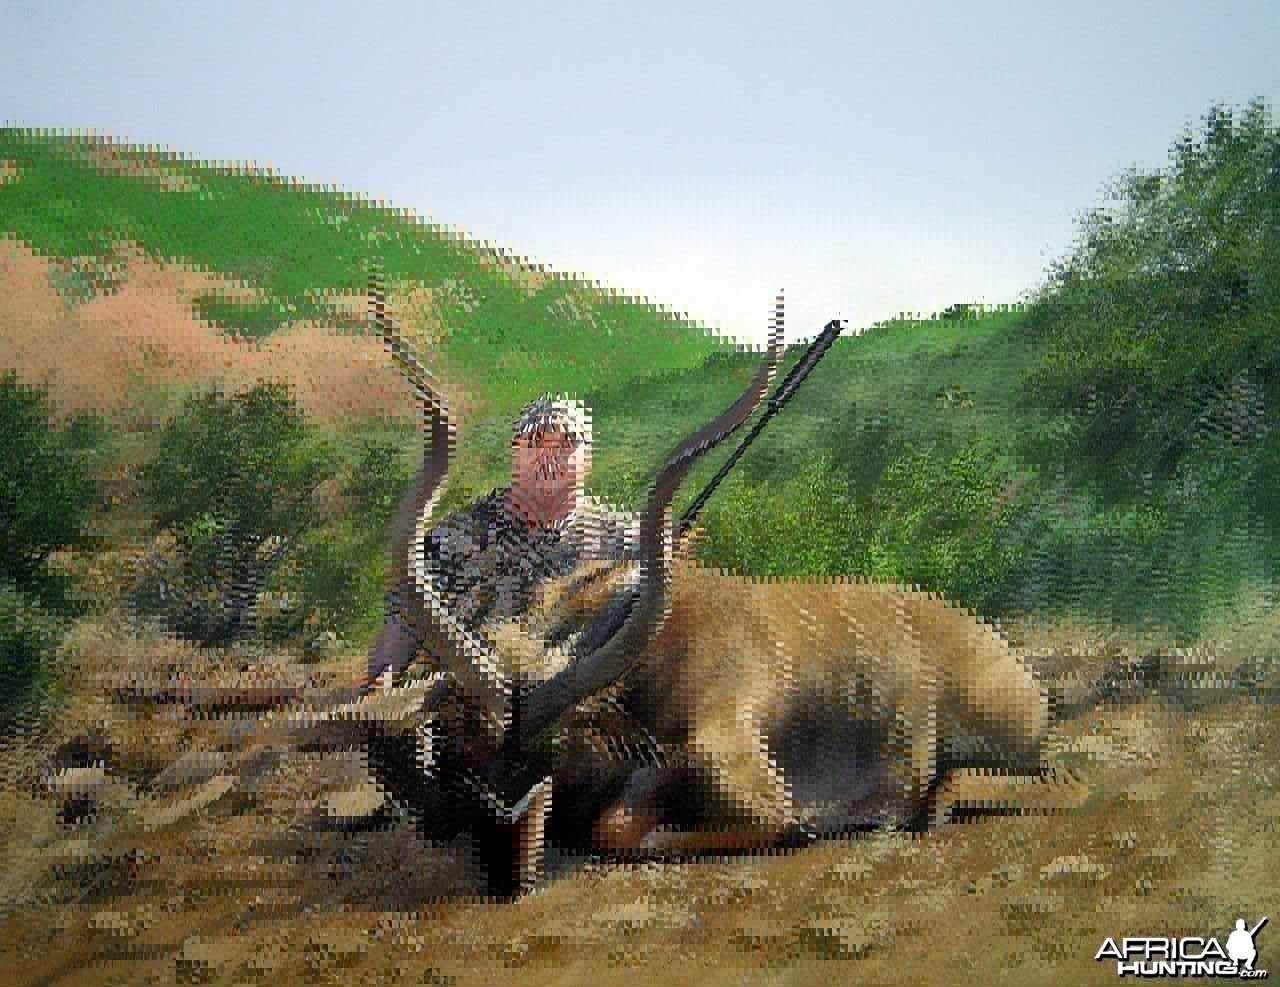 Hunting Trophy Portrait by Dawie Fourie